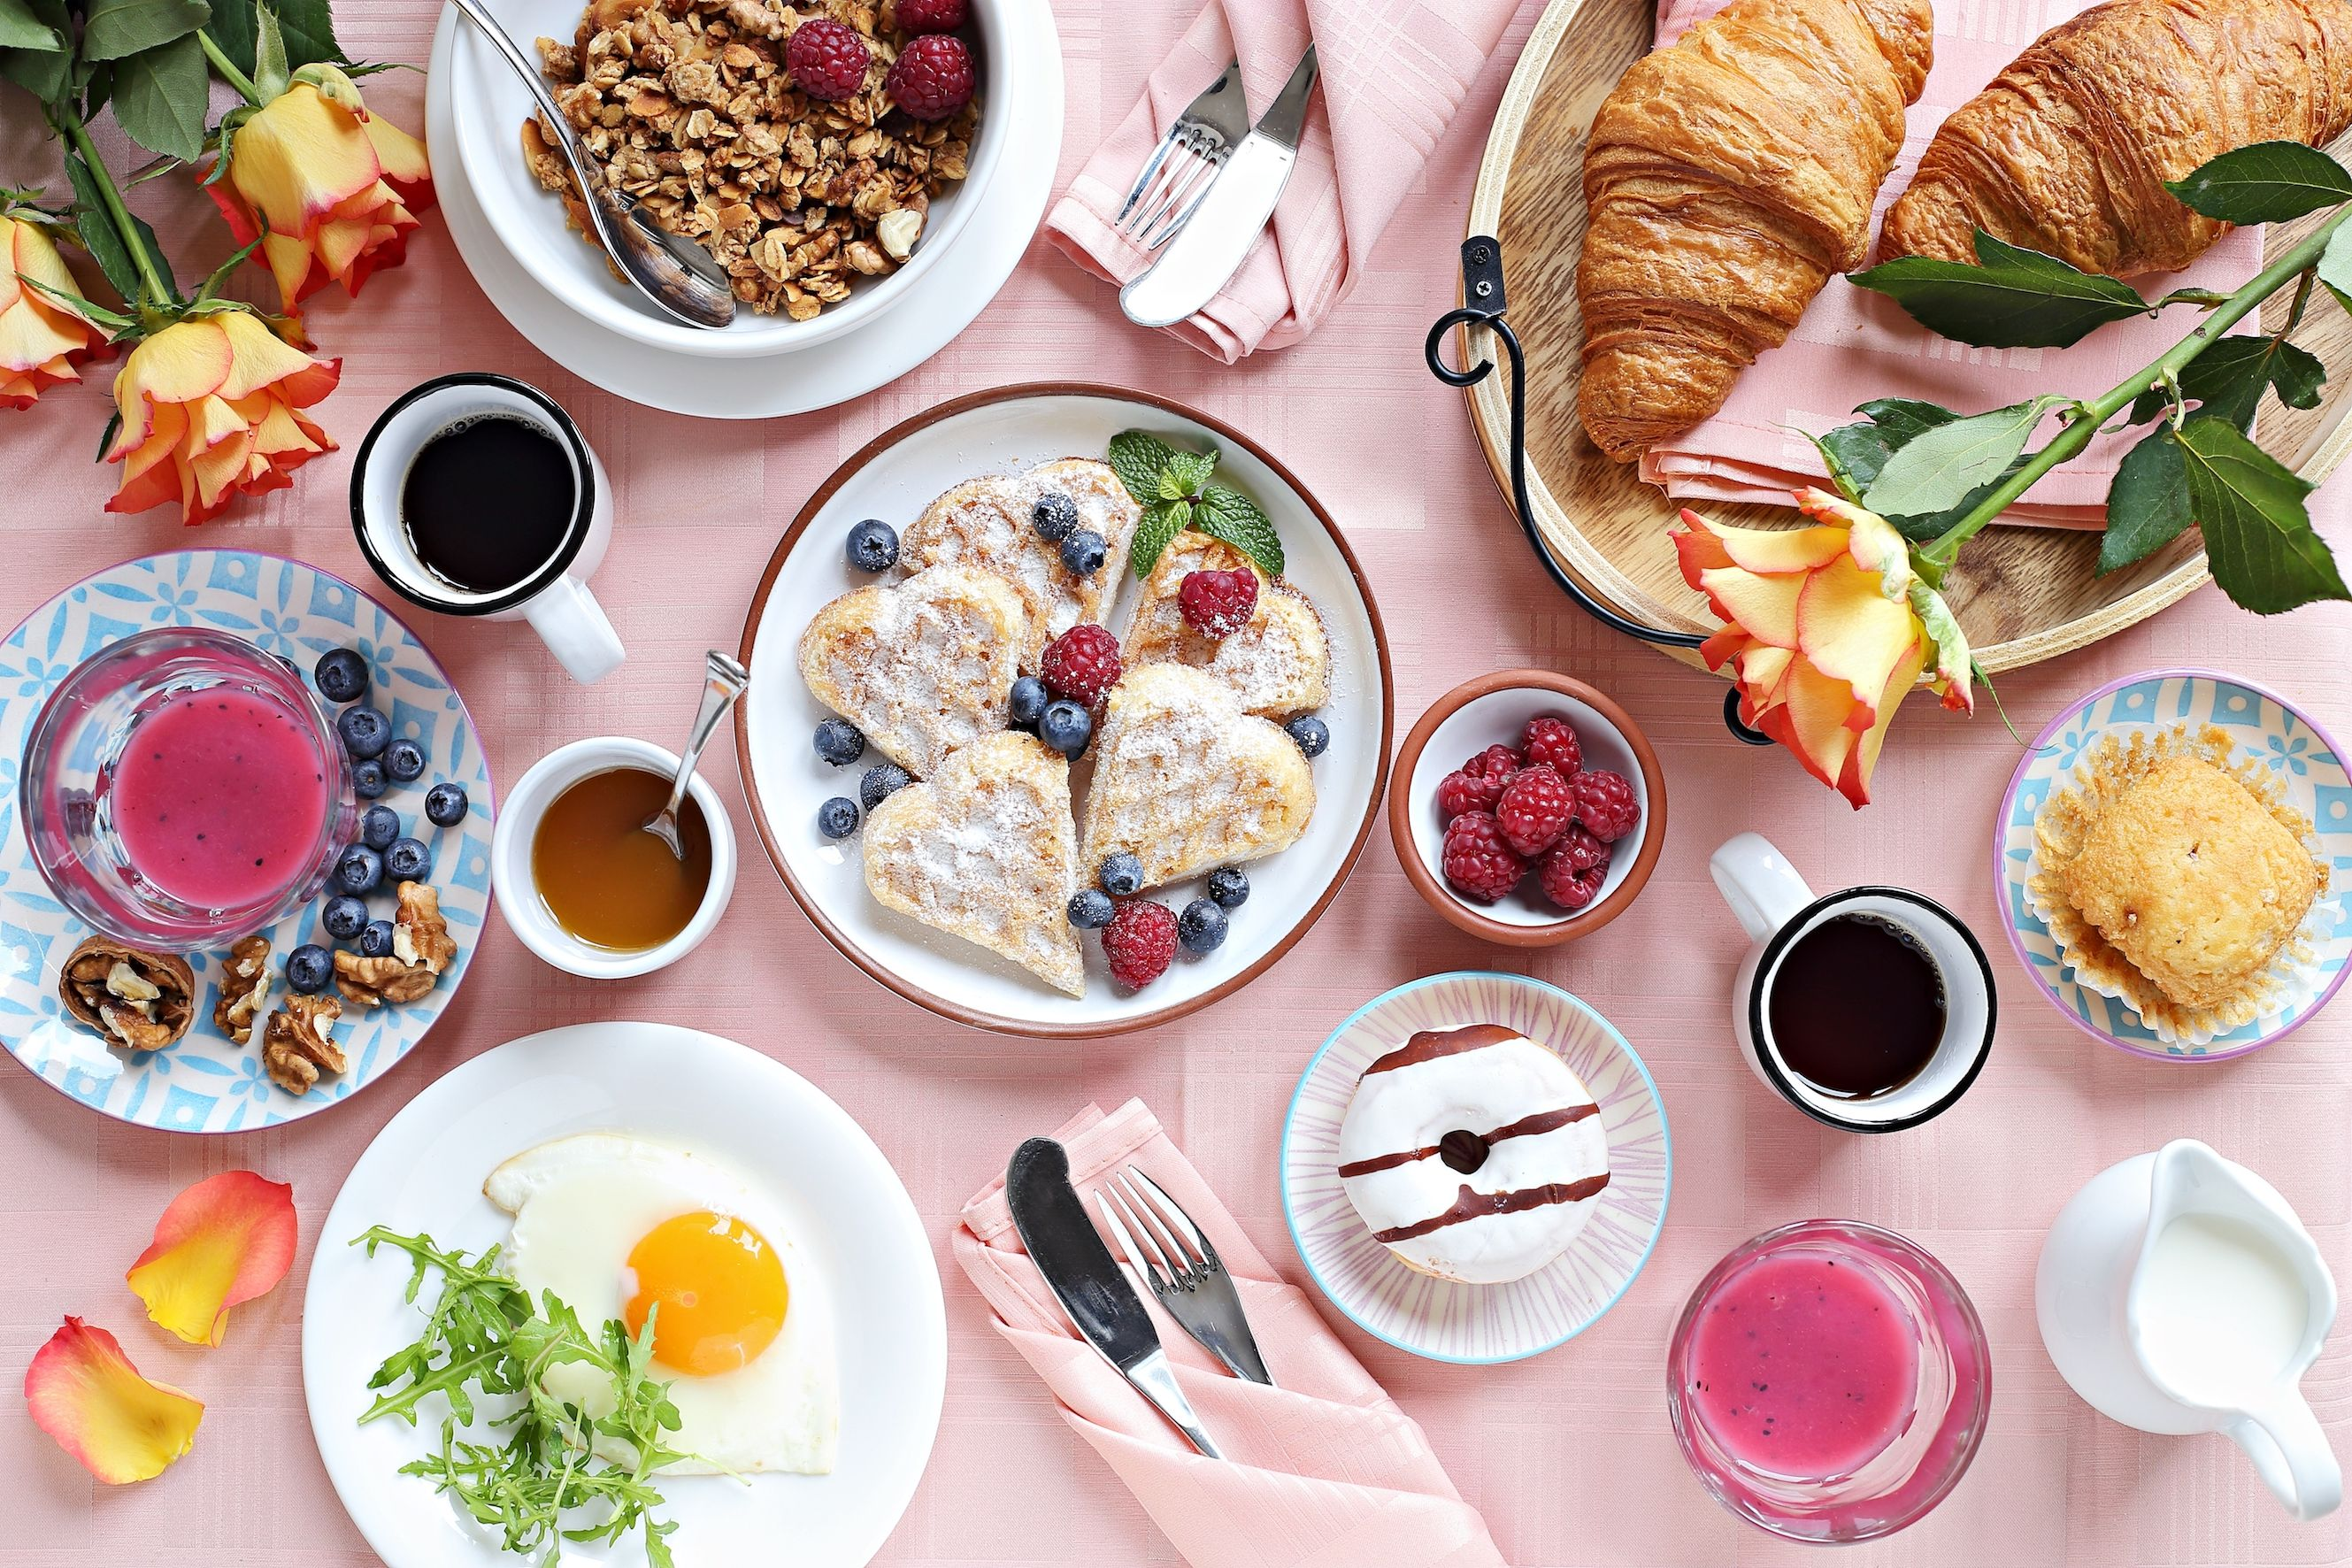 16 Of The Best Breakfasts In London, From Claridge's To Dishoom